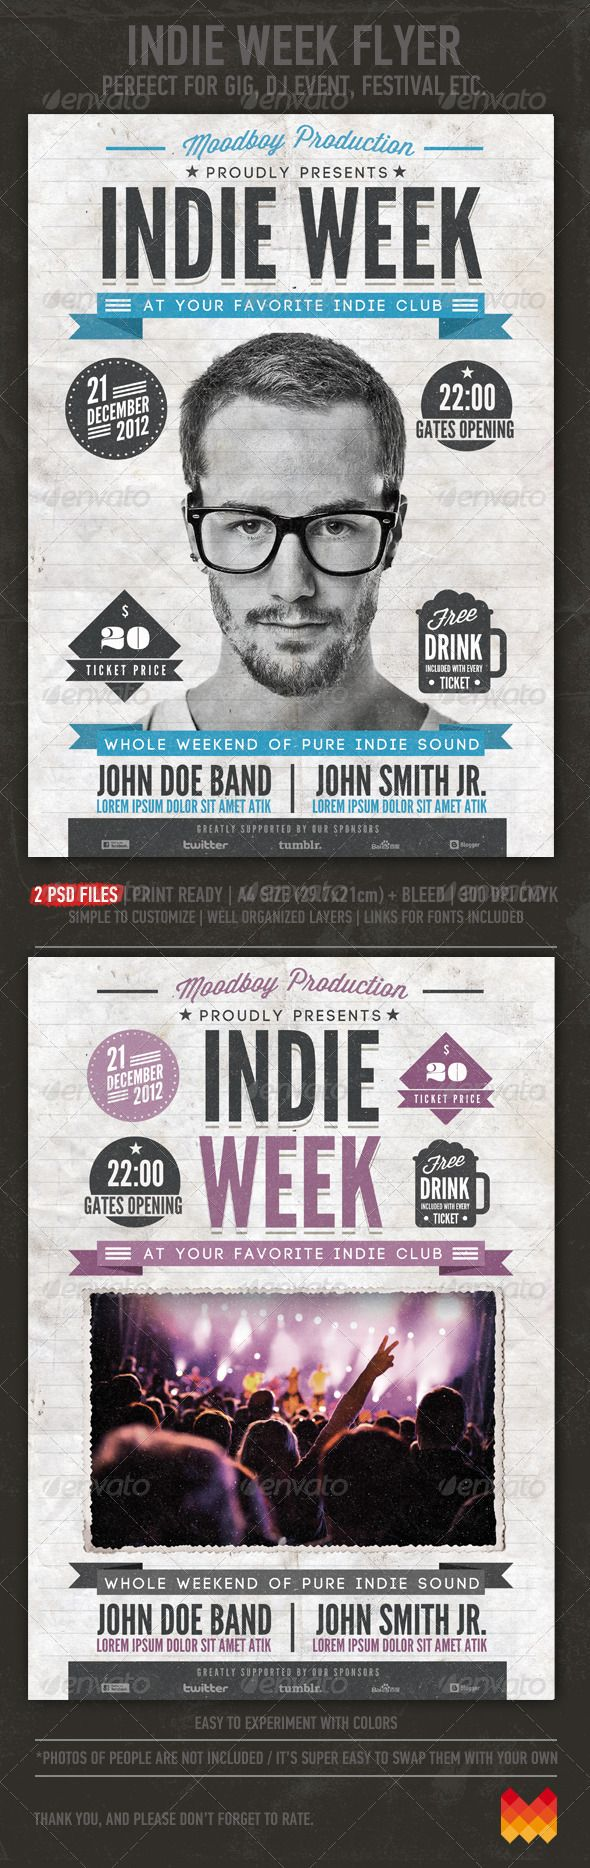 Indie Week Flyer/Poster PSD Print Template | Download: http://graphicriver.net/item/indie-week-flyerposter/3552627?WT.ac=category_thumbWT.z_author=moodboyref=ksioks